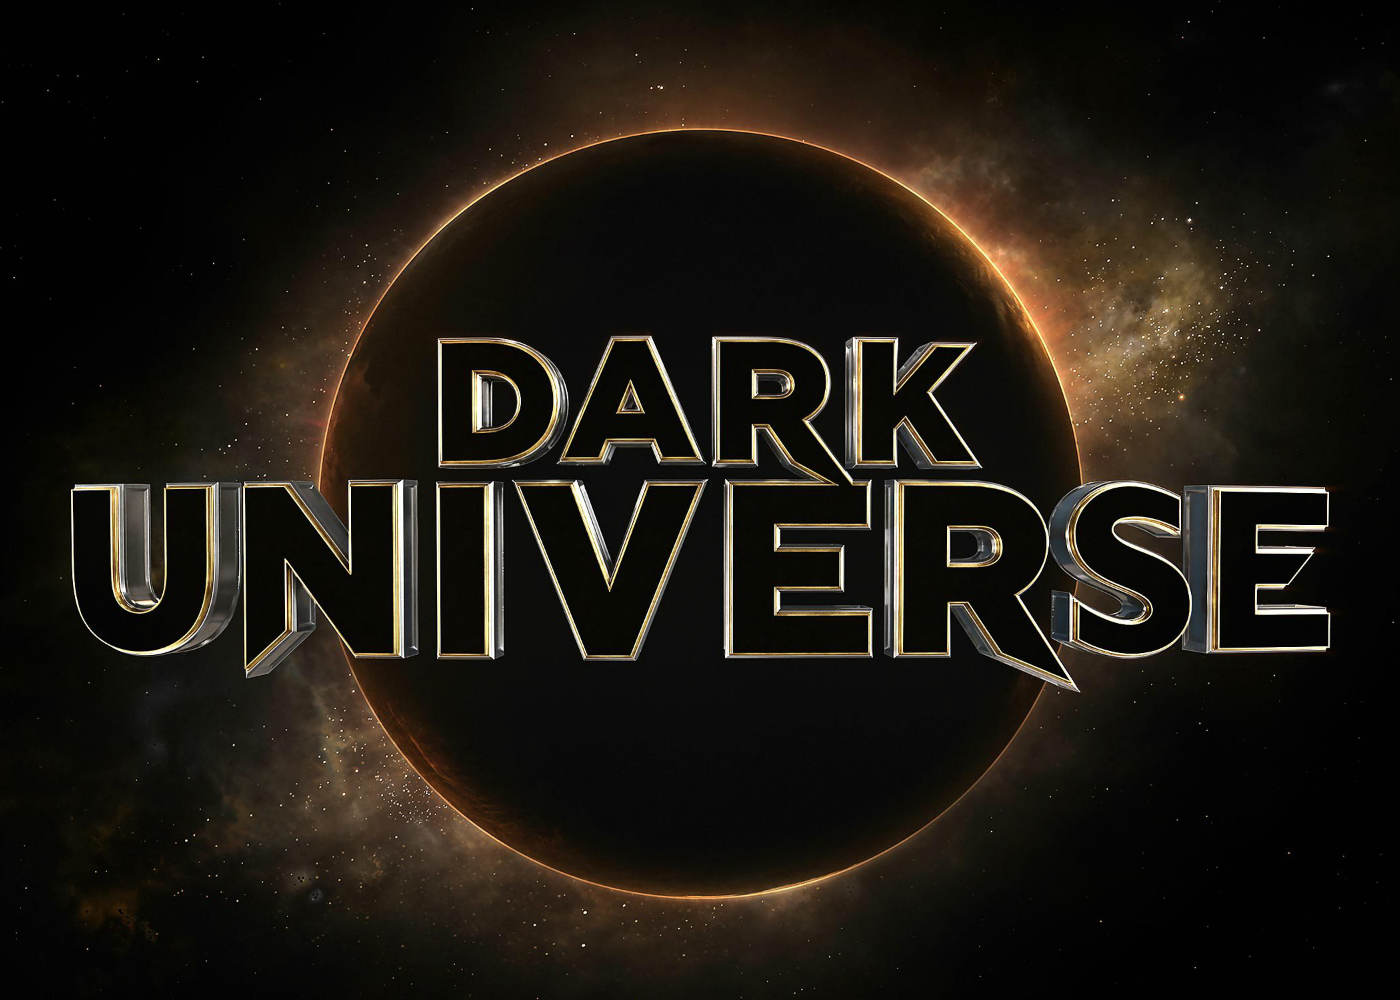 Universal's Dark Universe Adds Two More Classic Characters to its Roster